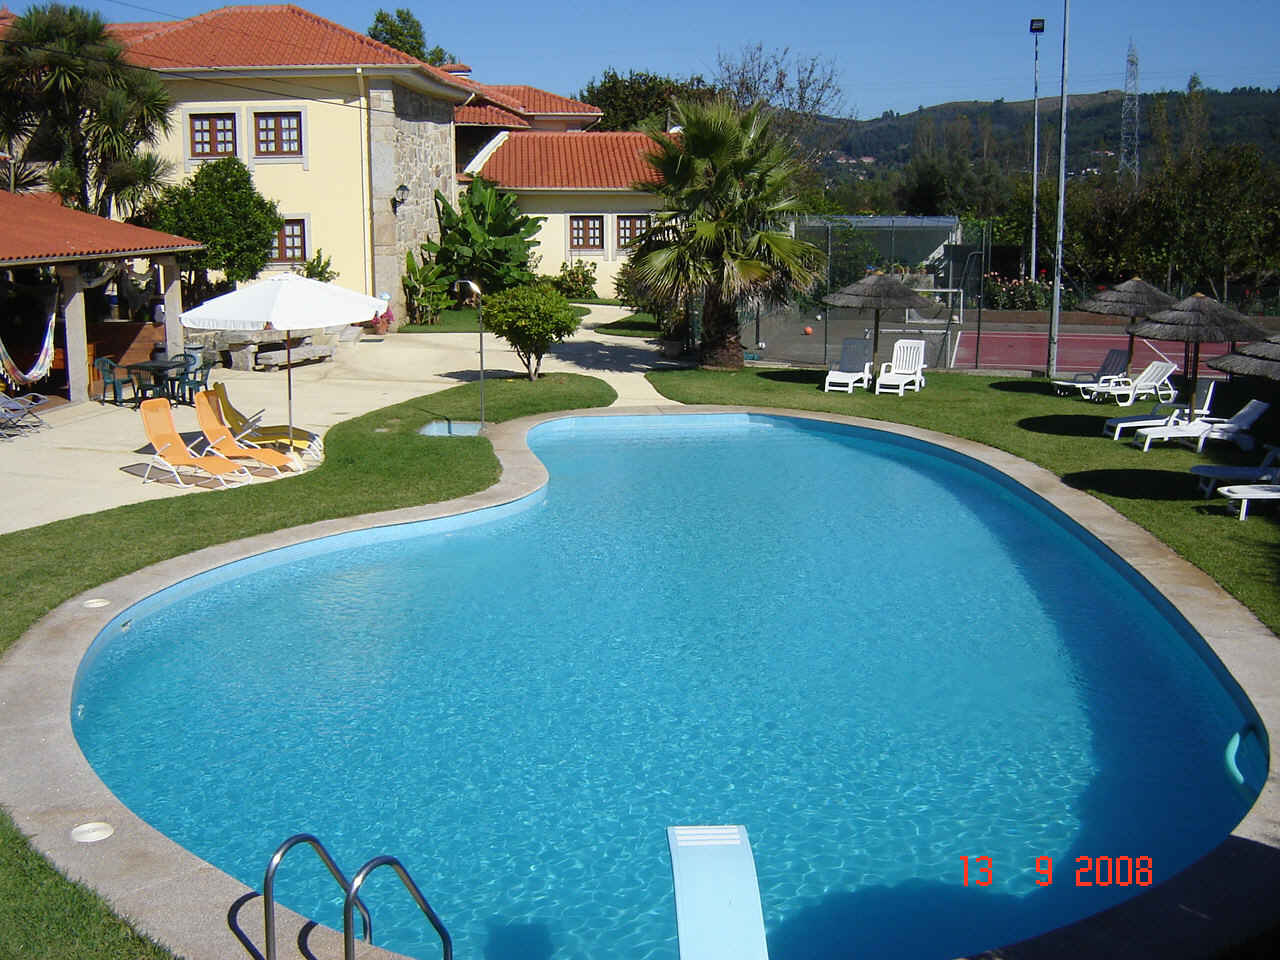 Real Estate - Sales - Villas - White Villa in small Condominium near Lourinha - real Estate Portugal - ID 5632